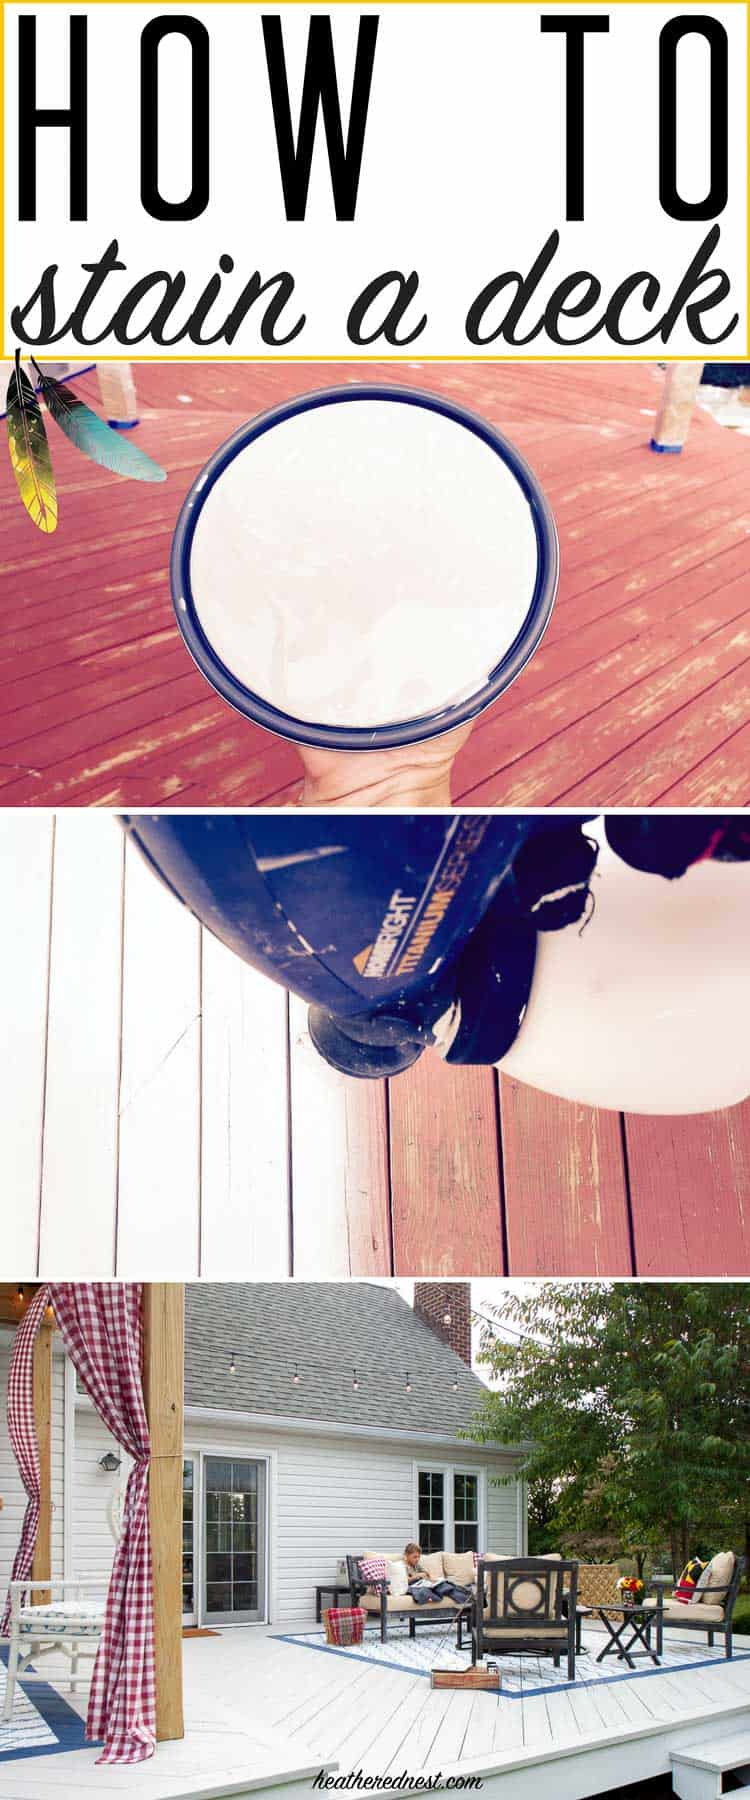 All you need to know about how to stain a deck! This popular DIY is not hard, but it's important to do it right! from heatherednest.com